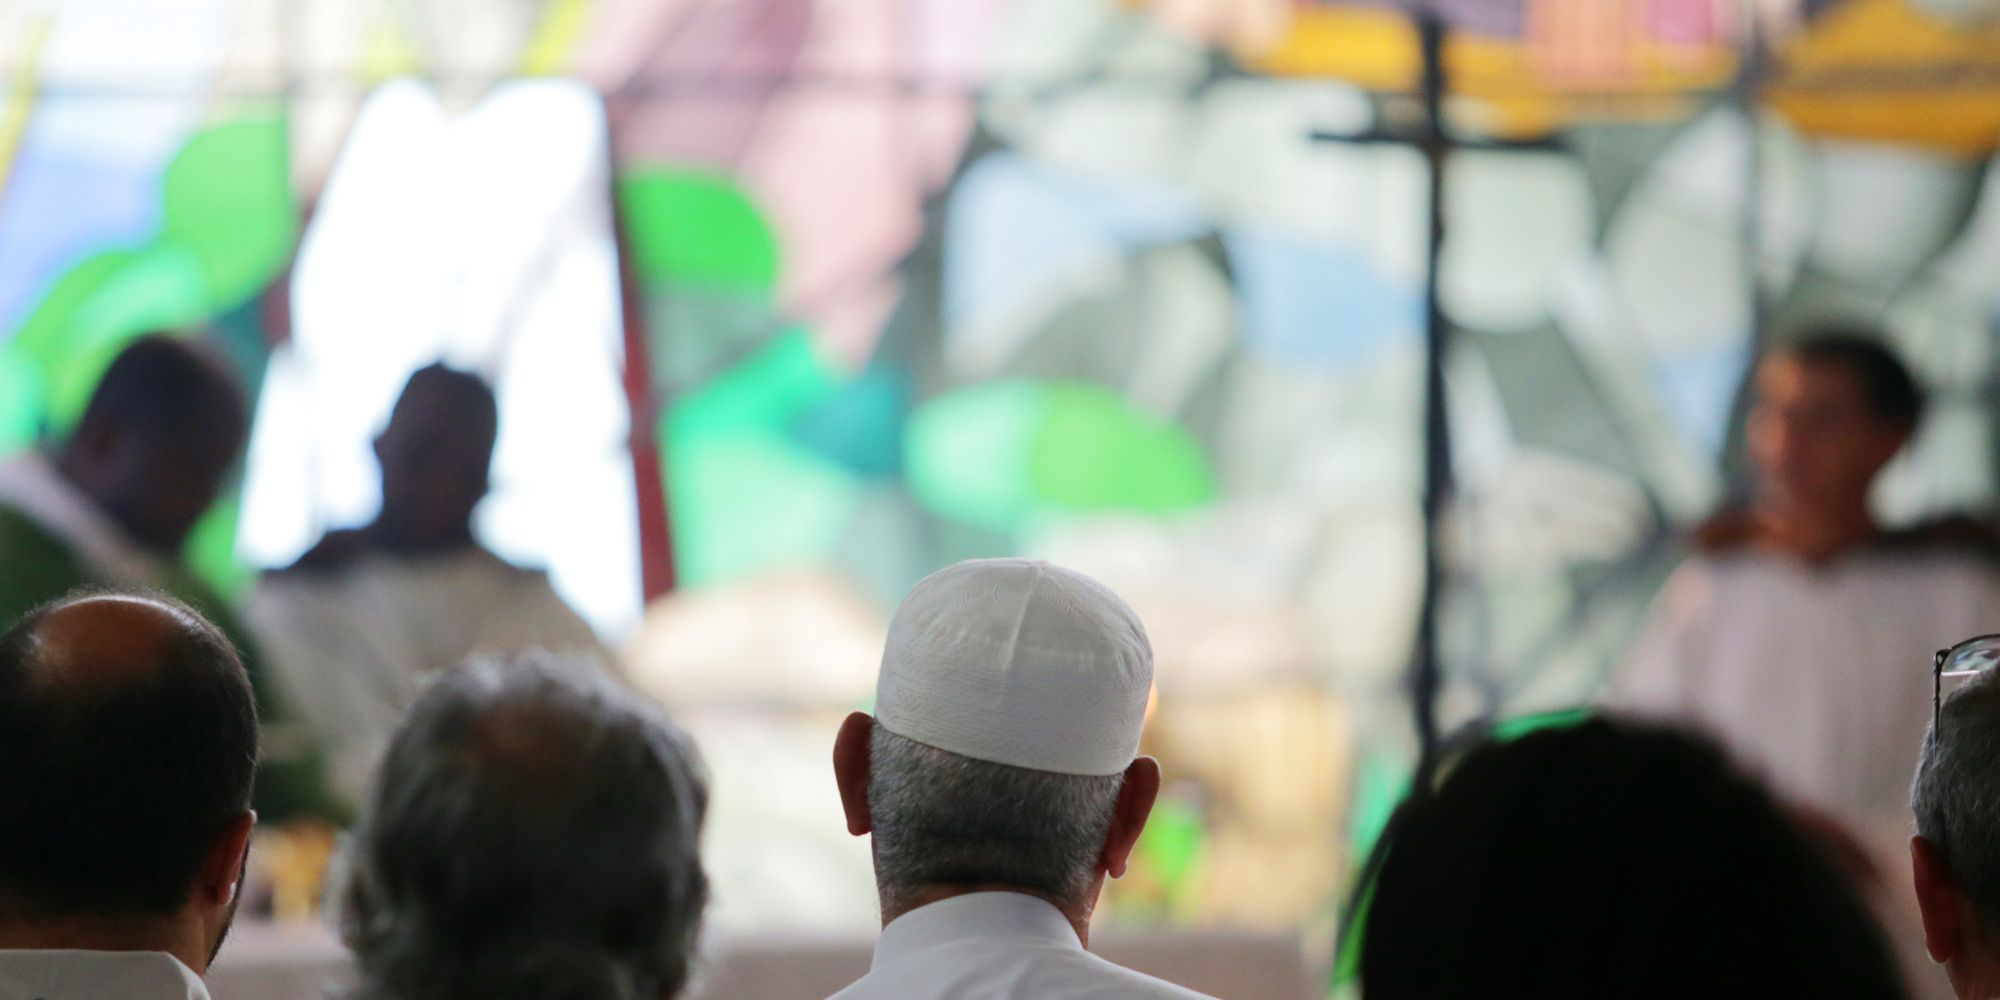 unity of muslims Unity: does it exist amongst muslims today how can we achieve it - shaad ahmed our responsibility regarding the unity of muslims we are commanded to be united, and condemned from be divided.